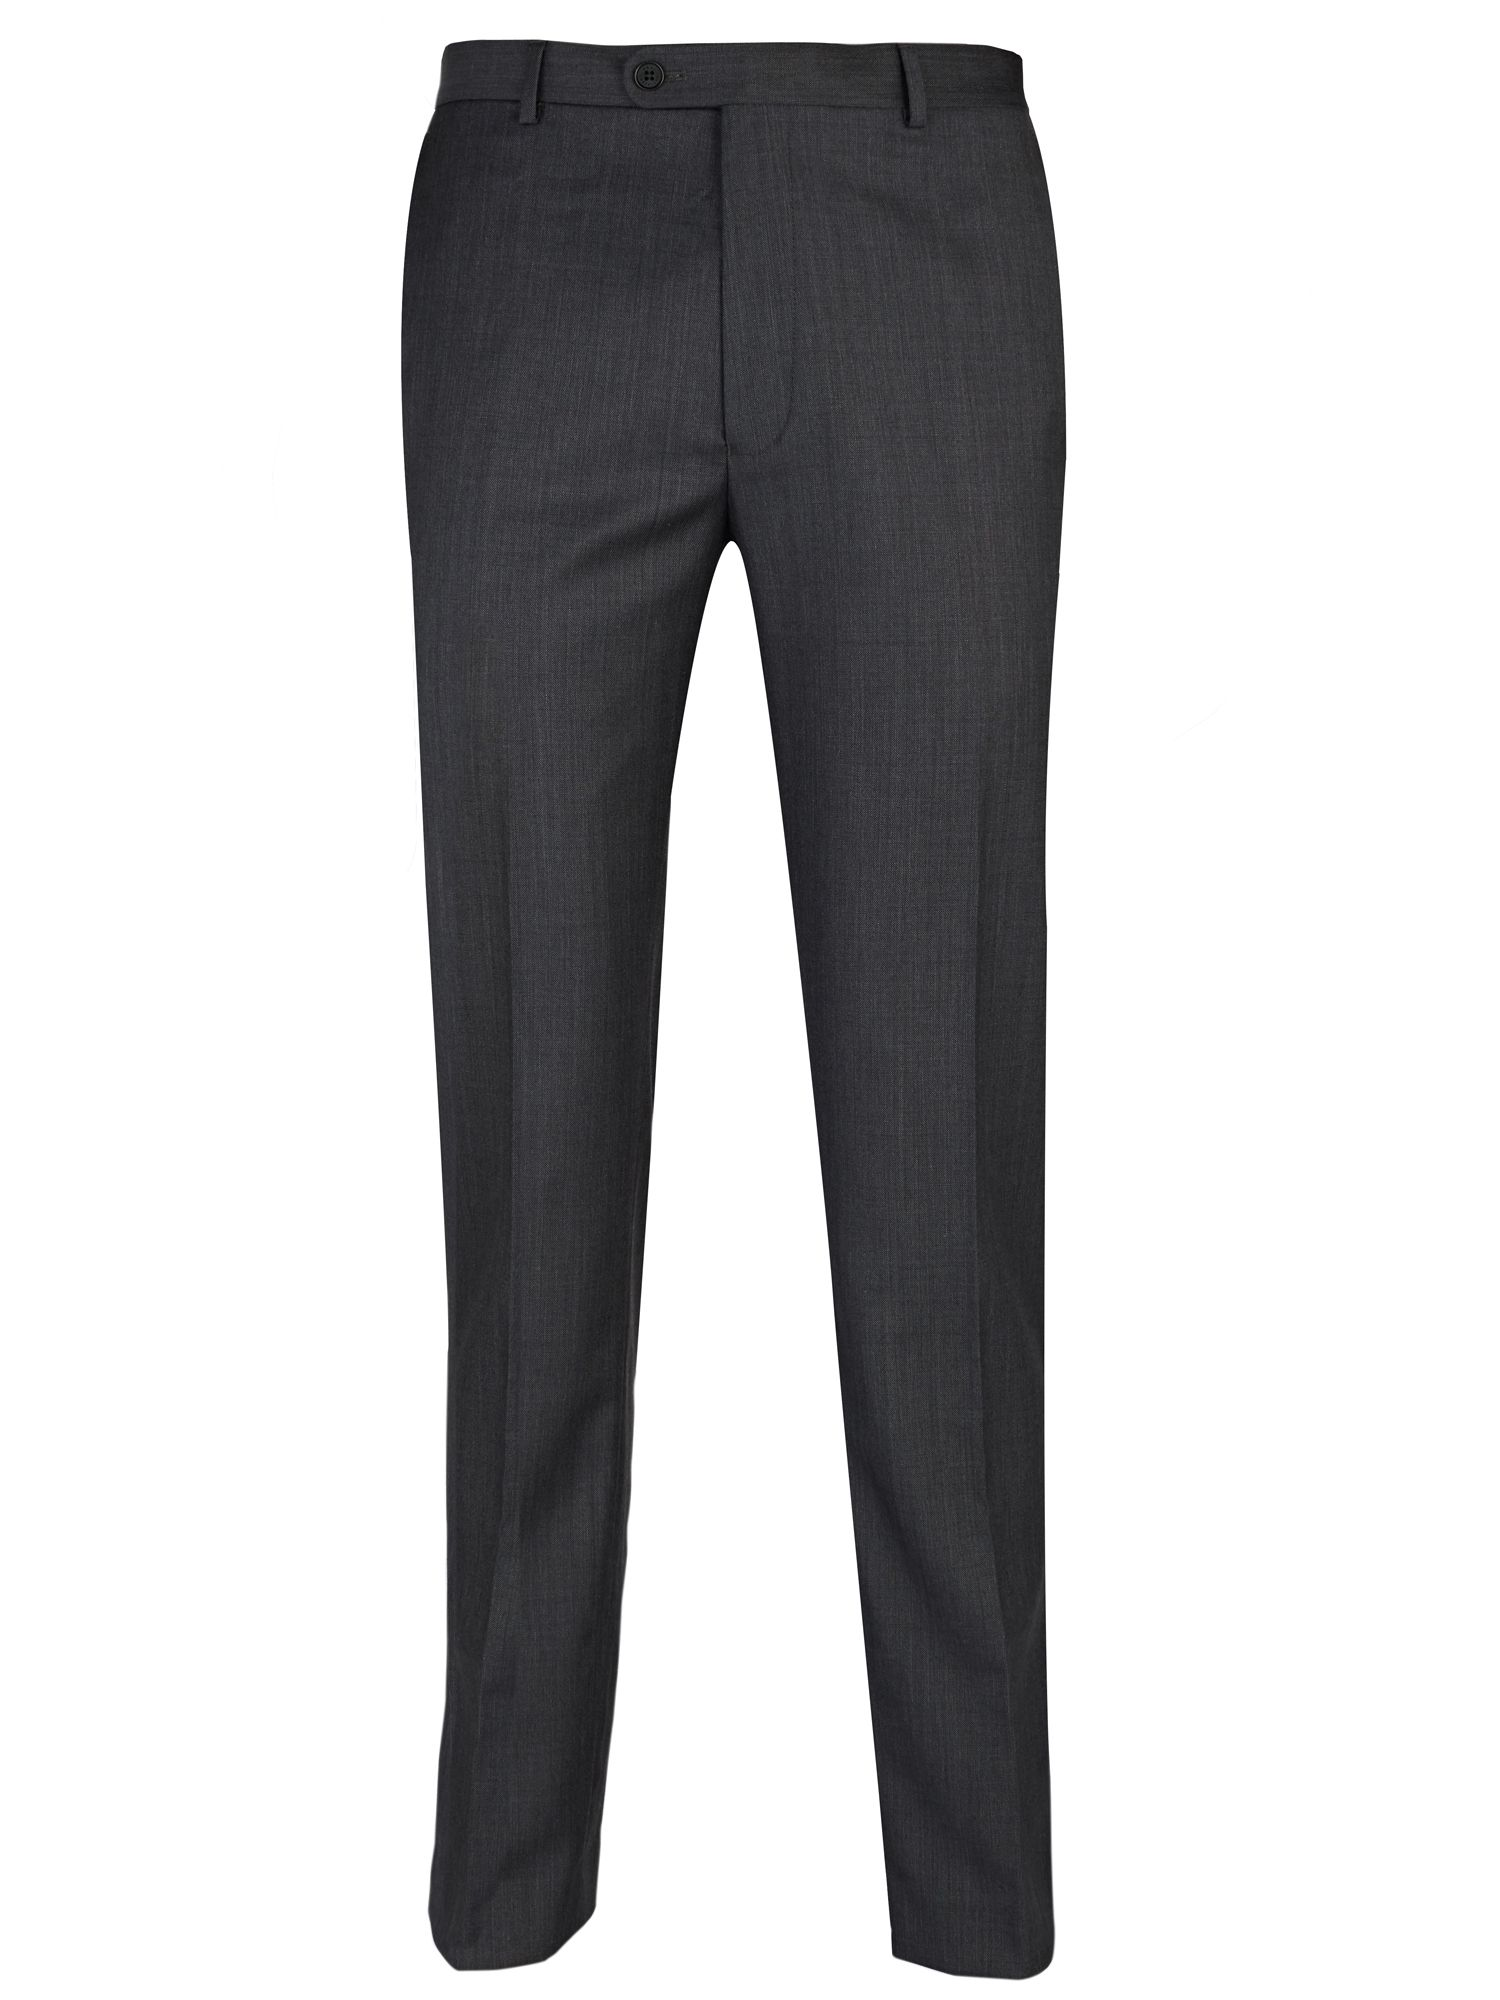 Paul Costelloe Men's Paul Costelloe Charcoal Pick and Pick Suit Trousers, Charcoal